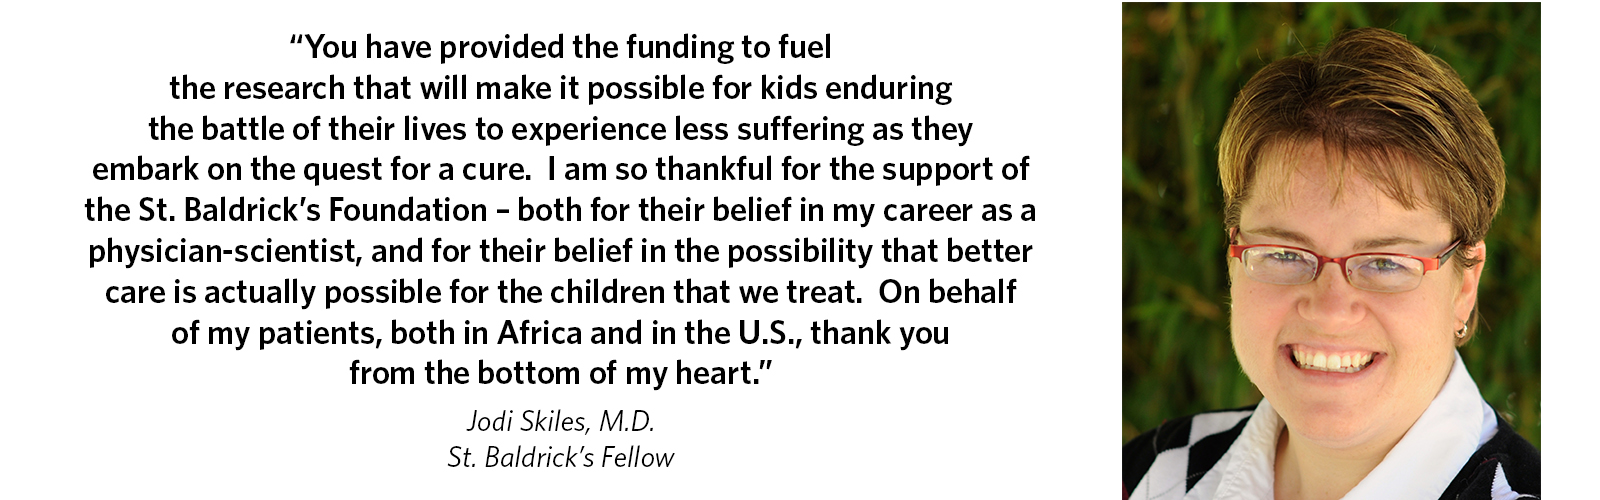 'You have provided the funding to fuel the research that will make it possible for kids enduring the battle of their lives to experience less suffering as they embark on the quest for a cure. I am so thankful for the support of the St. Baldrick's Foundation – both for their belief in my career as a physician-scientist, and for their belief in the possibility that better care is actually possible for the children that we treat. On behalf of my patients, both in Africa and in the US, thank you from the bottom of my heart.' Jodi Skiles, M.D., St. Baldrick's Fellow